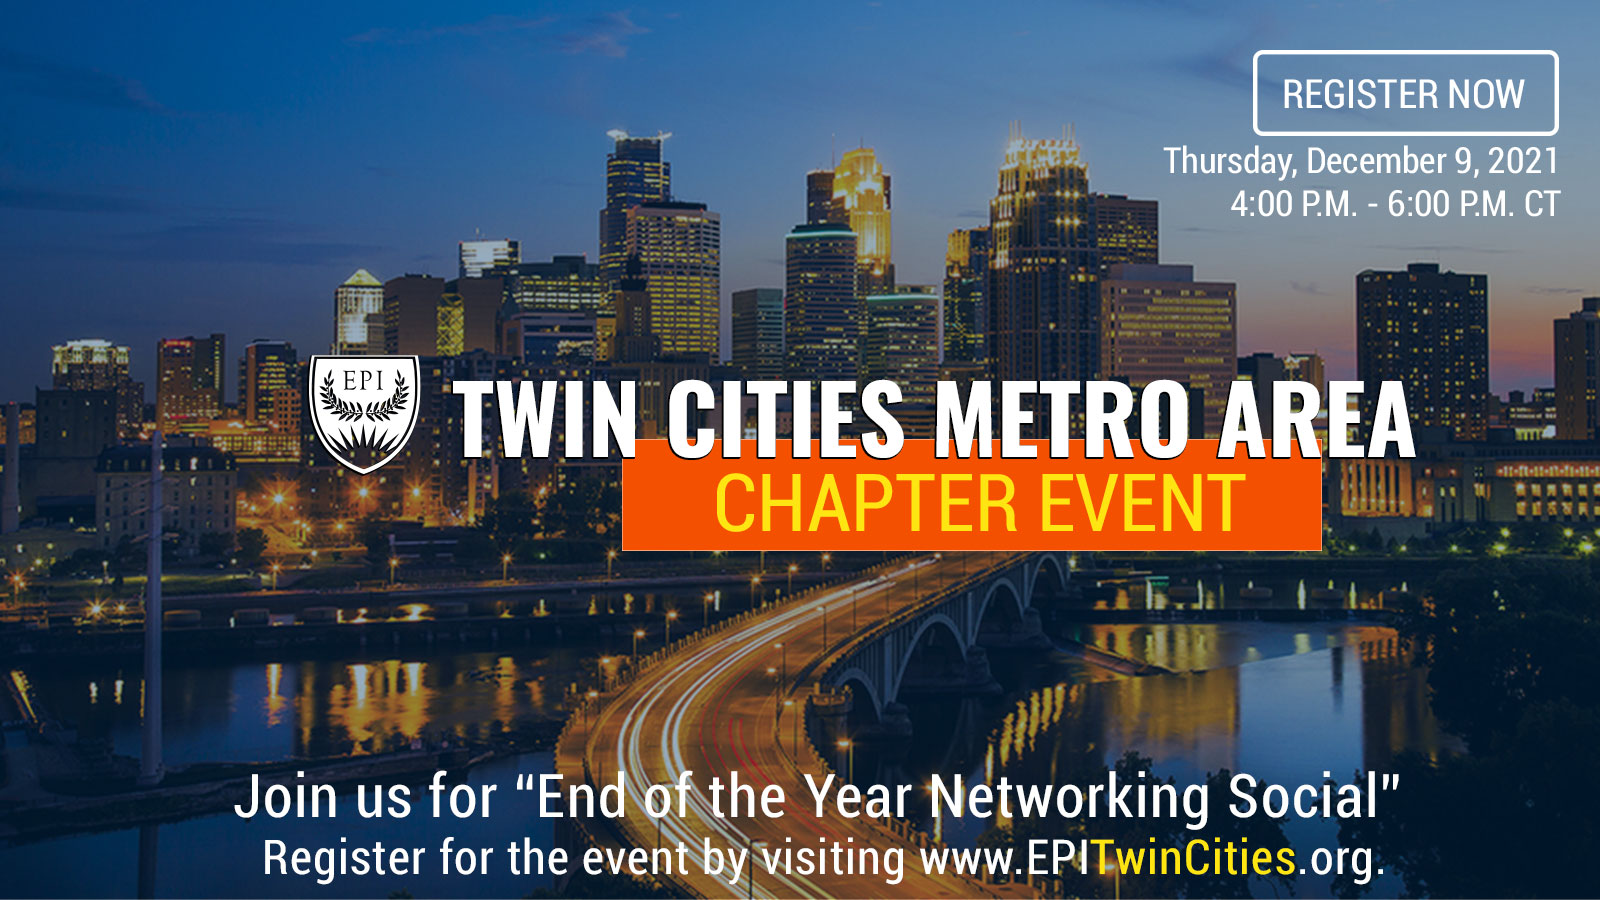 End of Year Networking Social